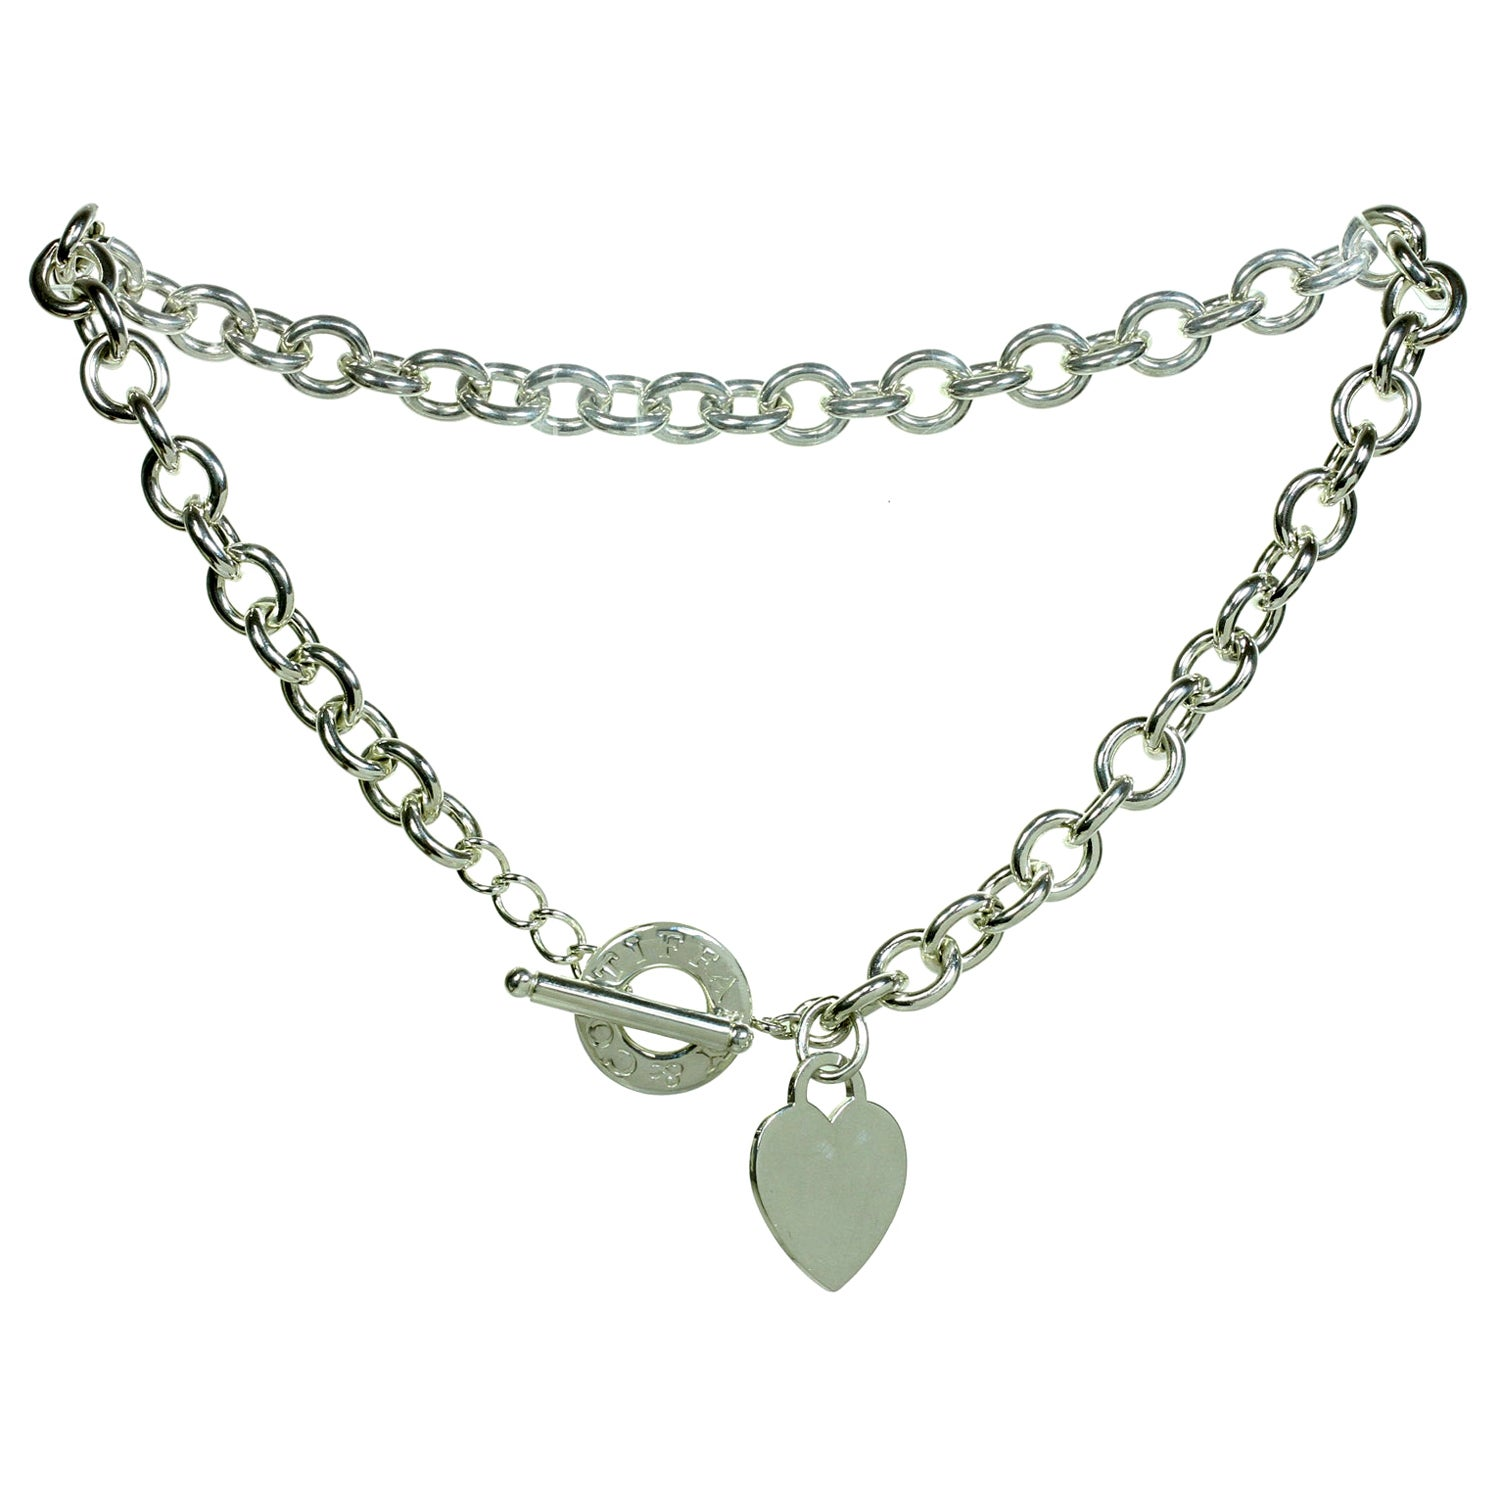 Tiffany & Co. Heart Toggle Chain Sterling Silver Link Necklace